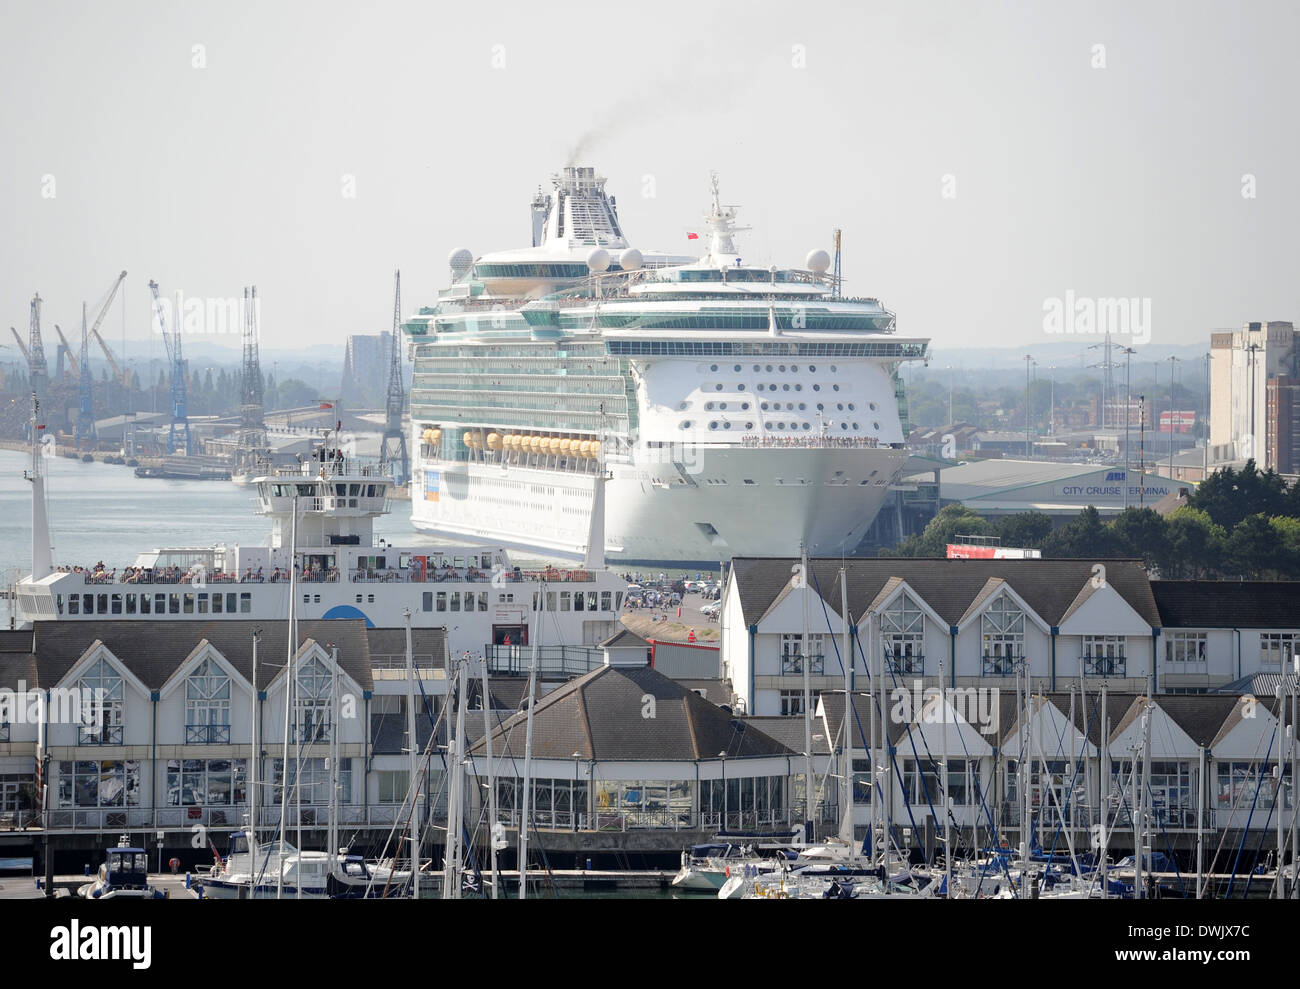 The Independence of the Seas cruise ship at Southampton. - Stock Image